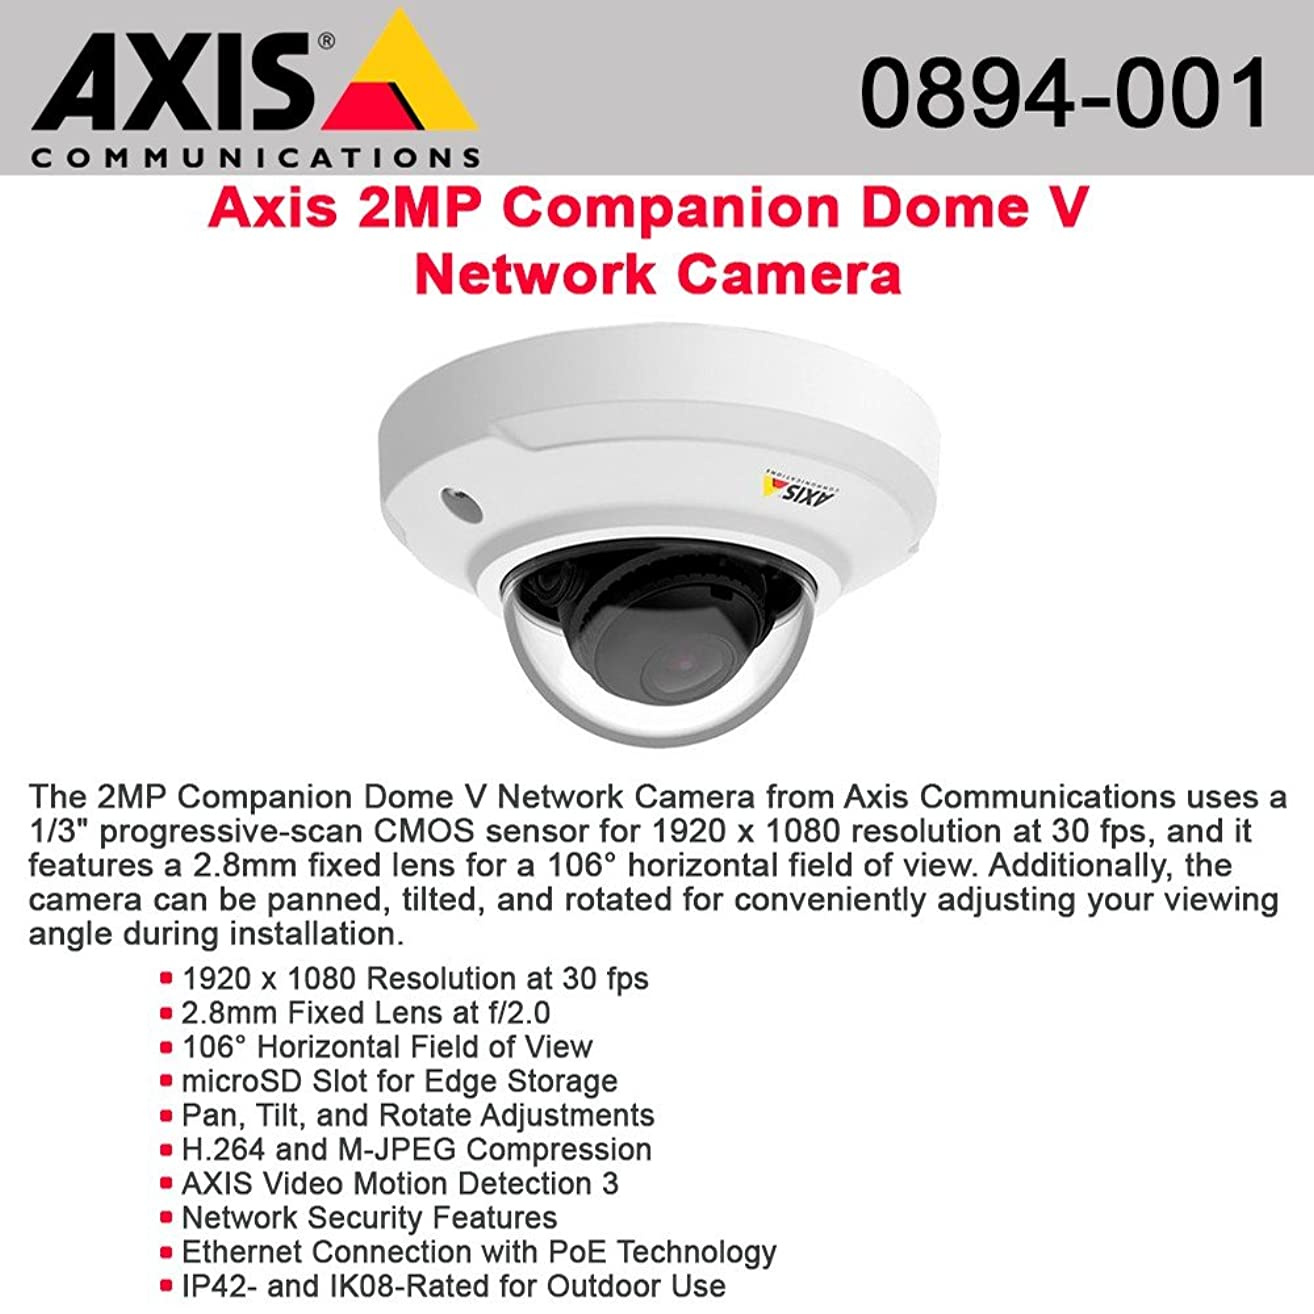 AXIS 0894-001 - AXIS 2 Megapixel Network Camera - Color - MPEG-4 AVC